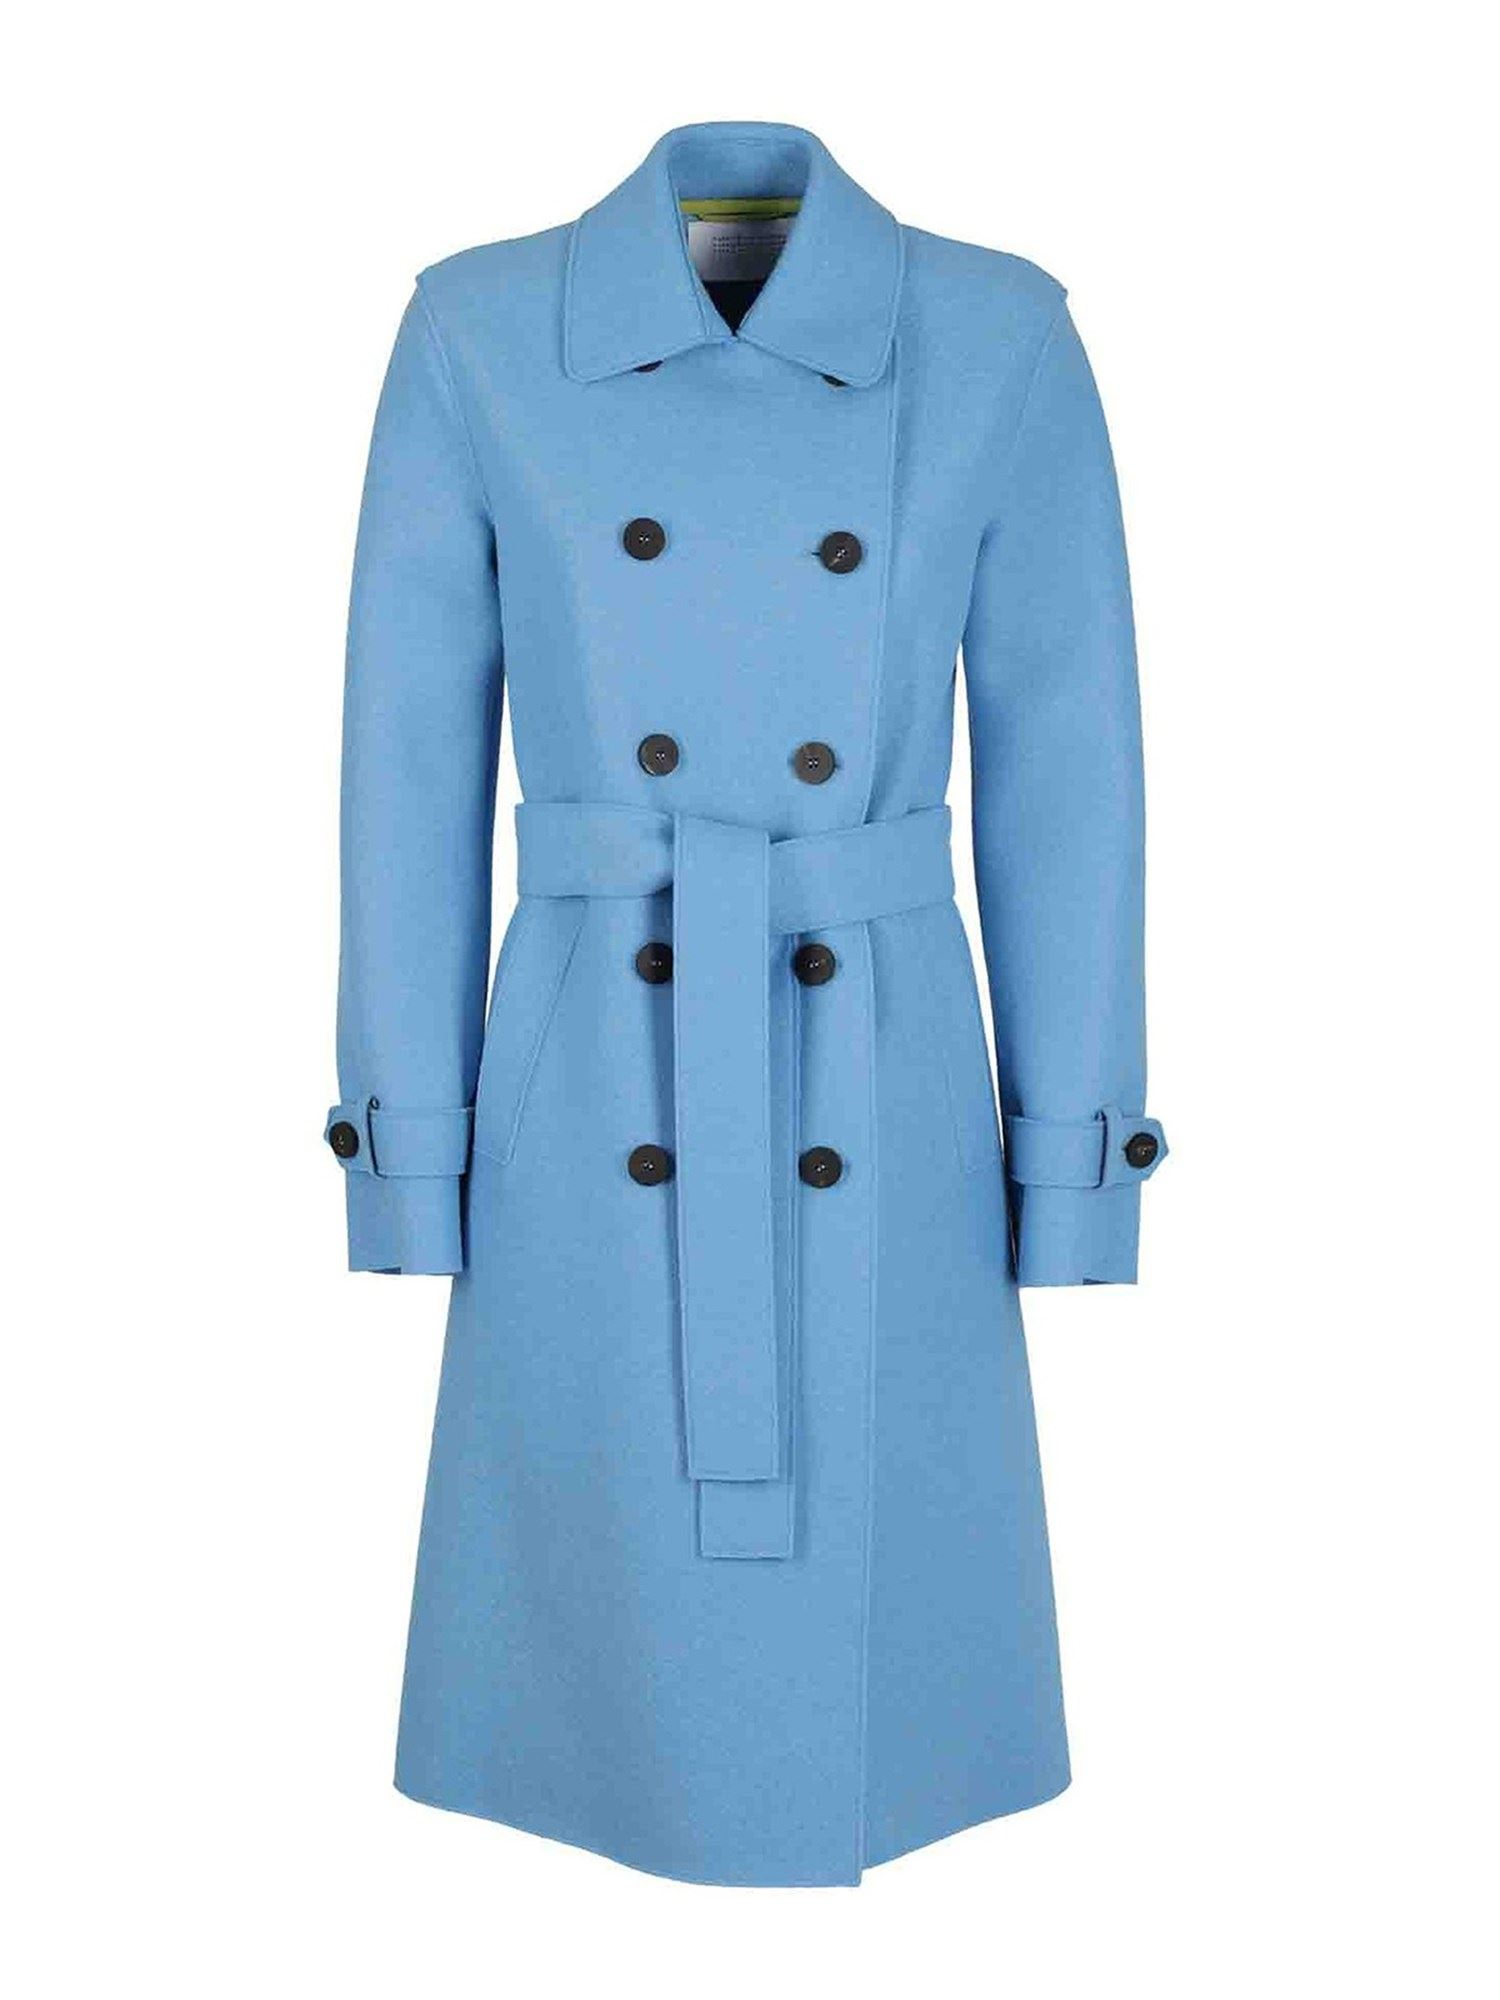 Harris Wharf London A LINE WOOL TRENCH COAT IN LIGHT BLUE